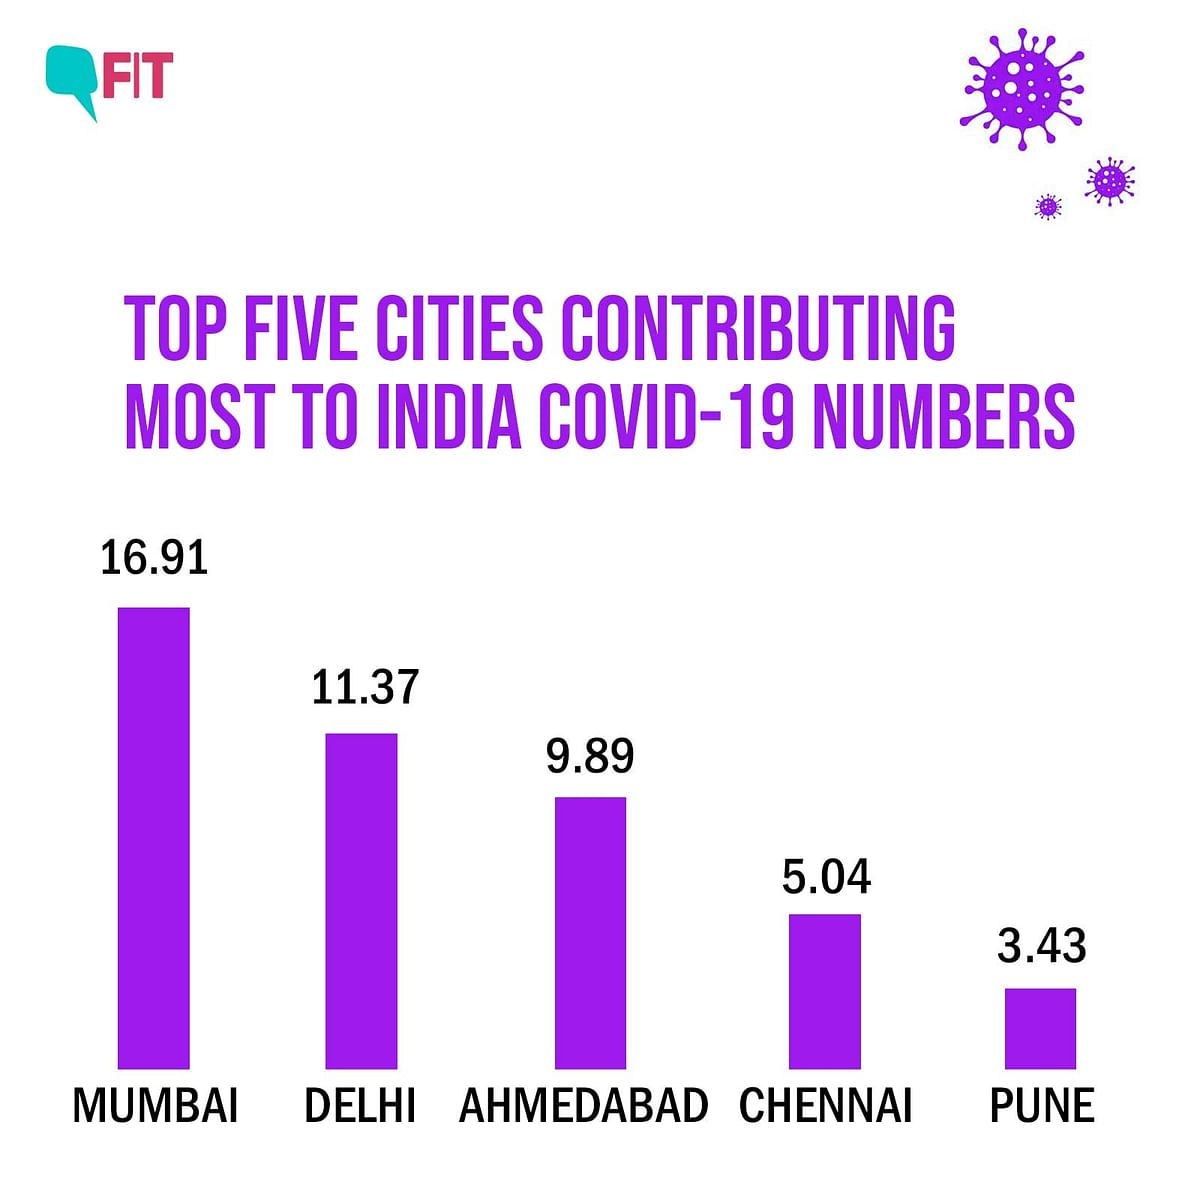 Source: Data shared by Amitabh Kant, CEO, Niti Ayog, on Twitter